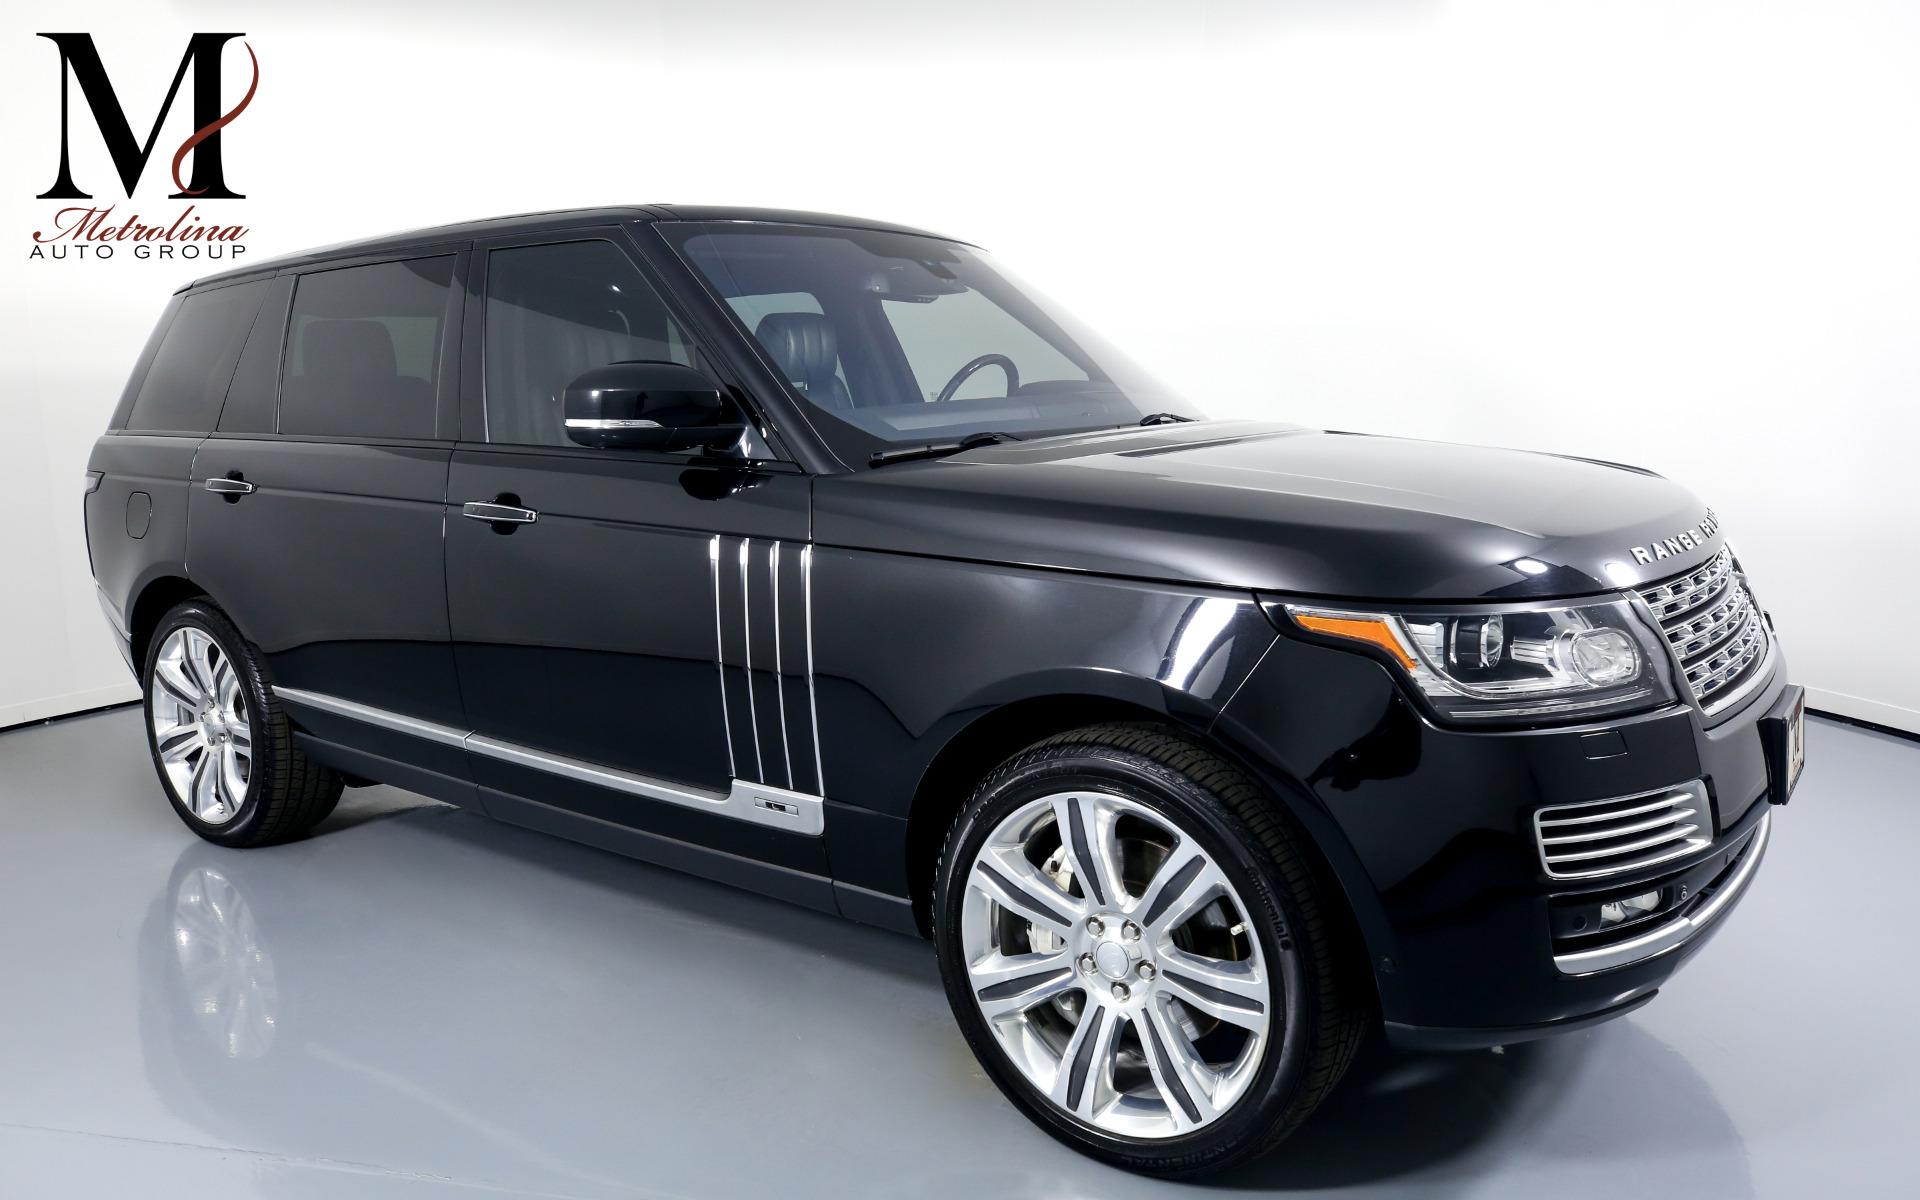 Used 2015 Land Rover Range Rover Autobiography Black LWB for sale $74,996 at Metrolina Auto Group in Charlotte NC 28217 - 1